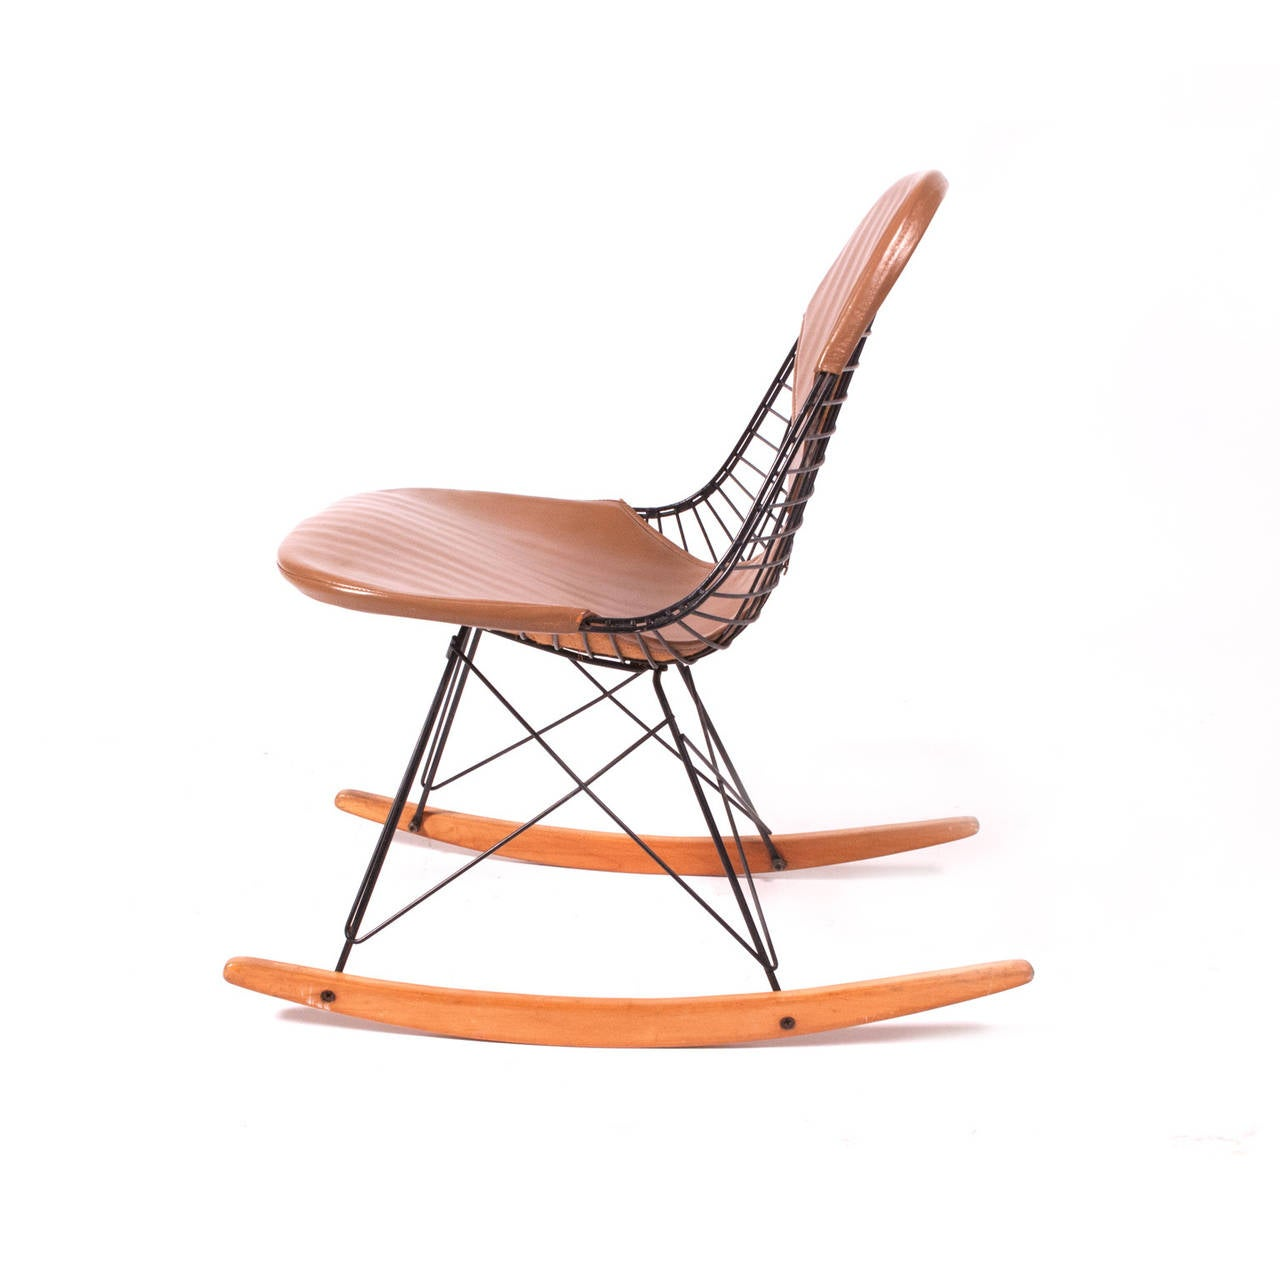 rkr charles eames rocker chair original at 1stdibs. Black Bedroom Furniture Sets. Home Design Ideas